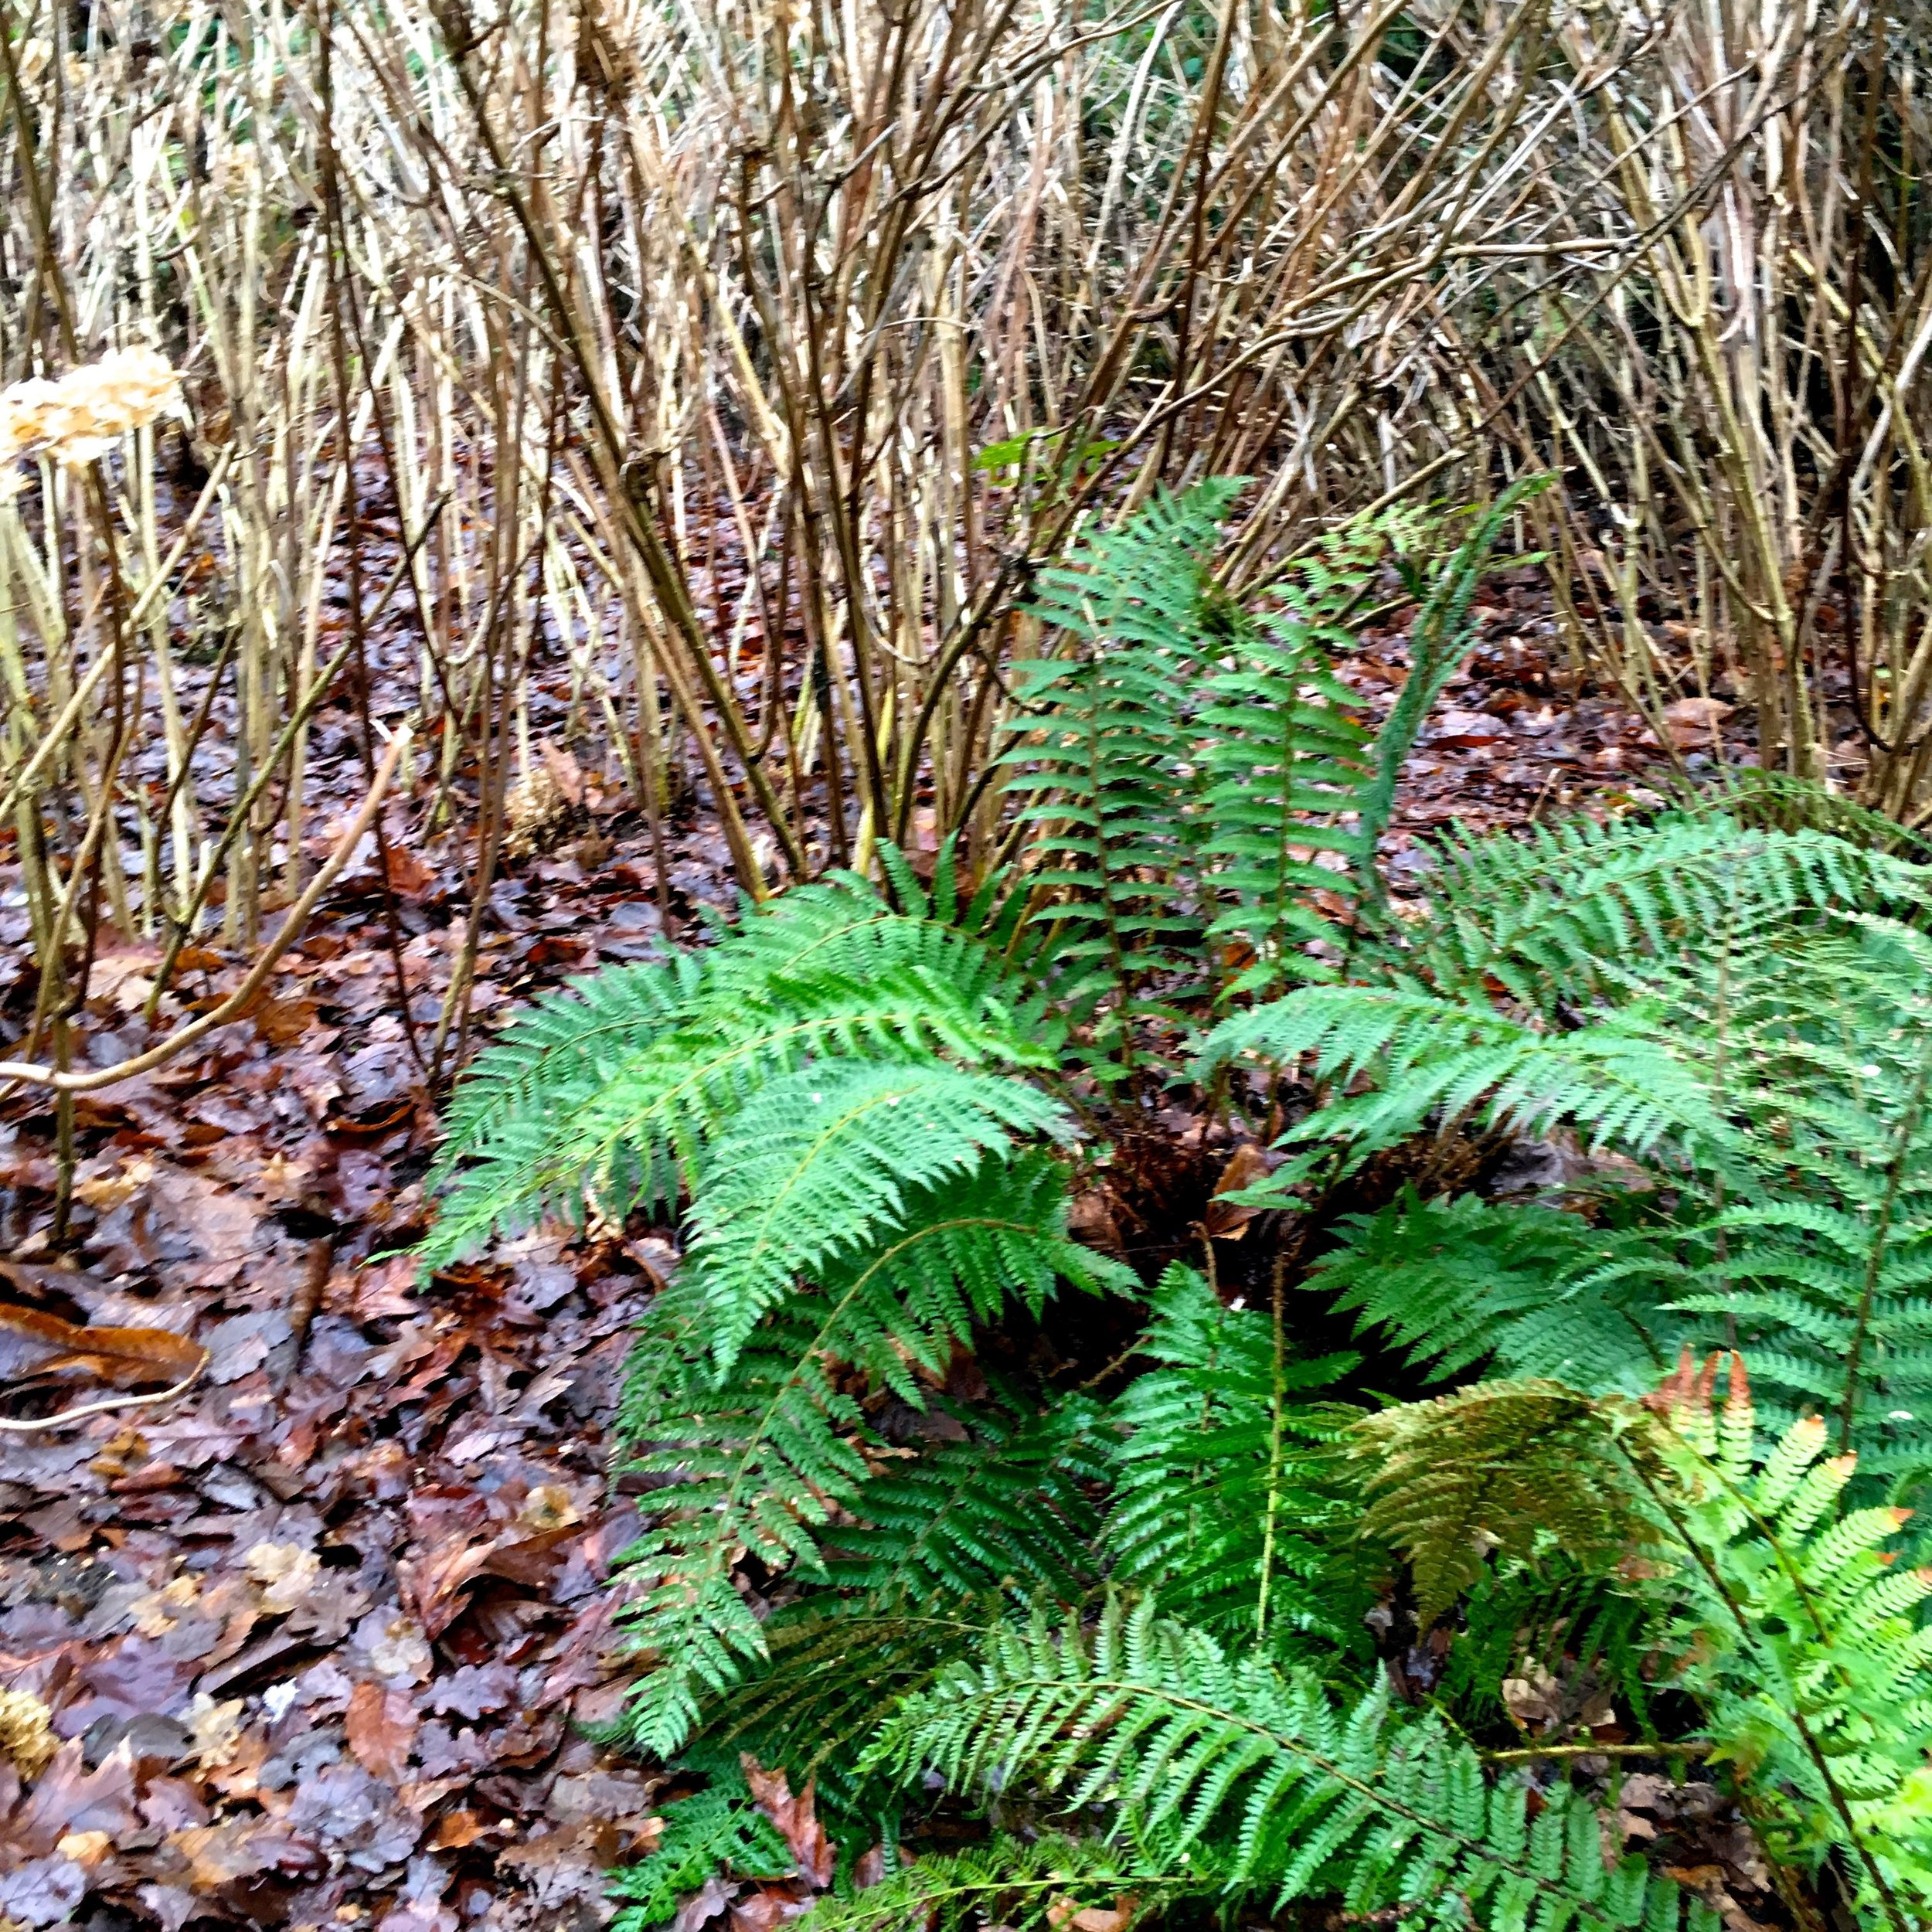 I couldn't resist a picture of the lush green ferns at Blickling